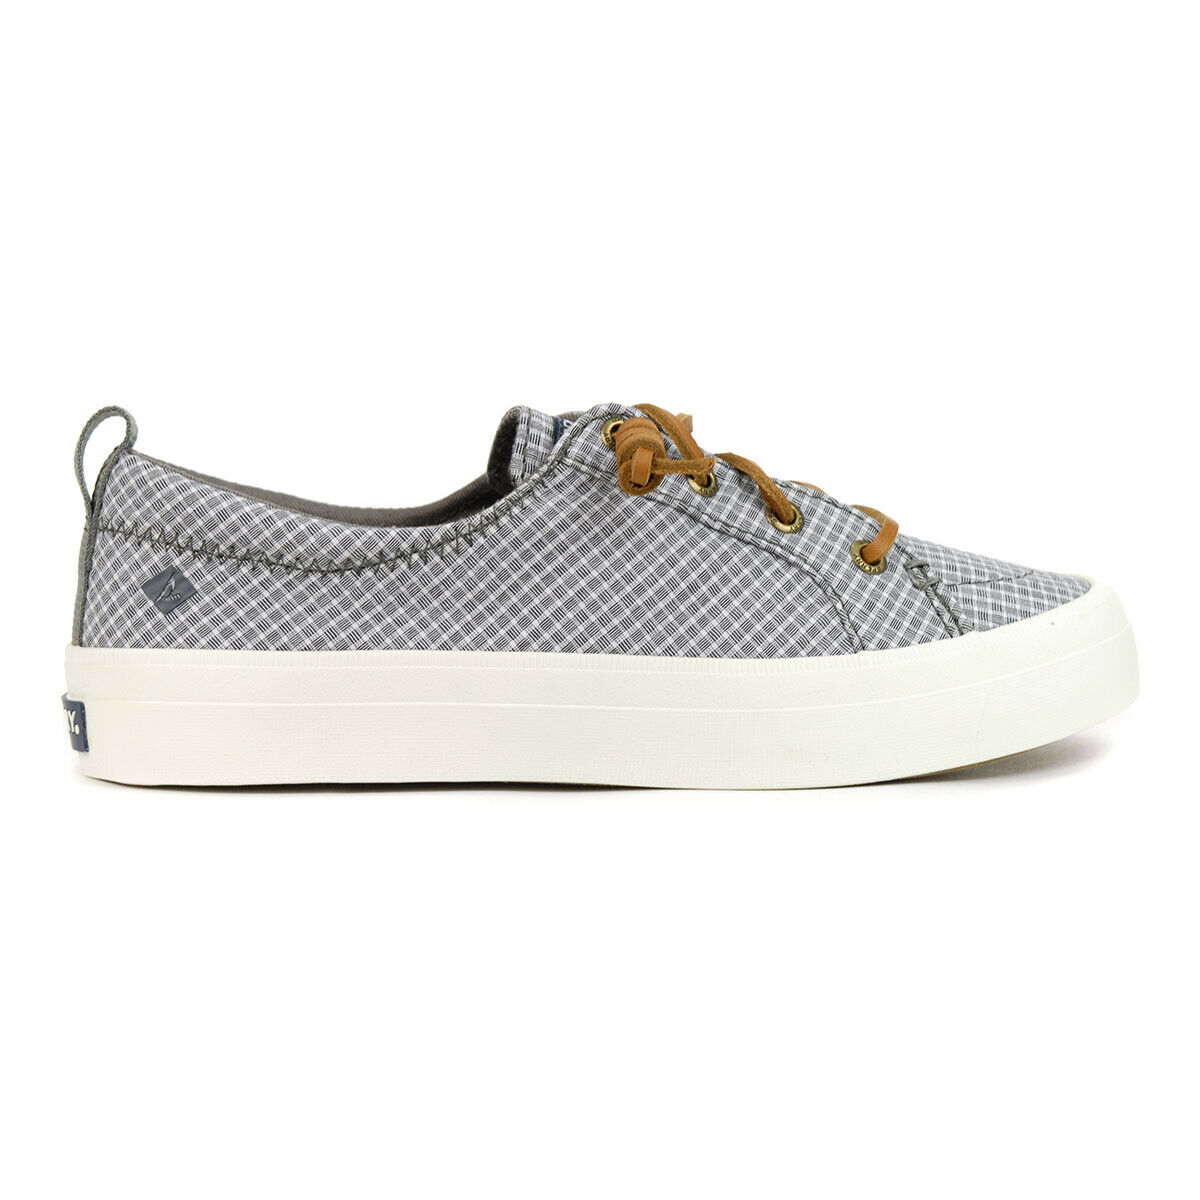 Sperry Women's Crest Vibe Mini Grey/White Checkered Sneakers STS85241 NEW